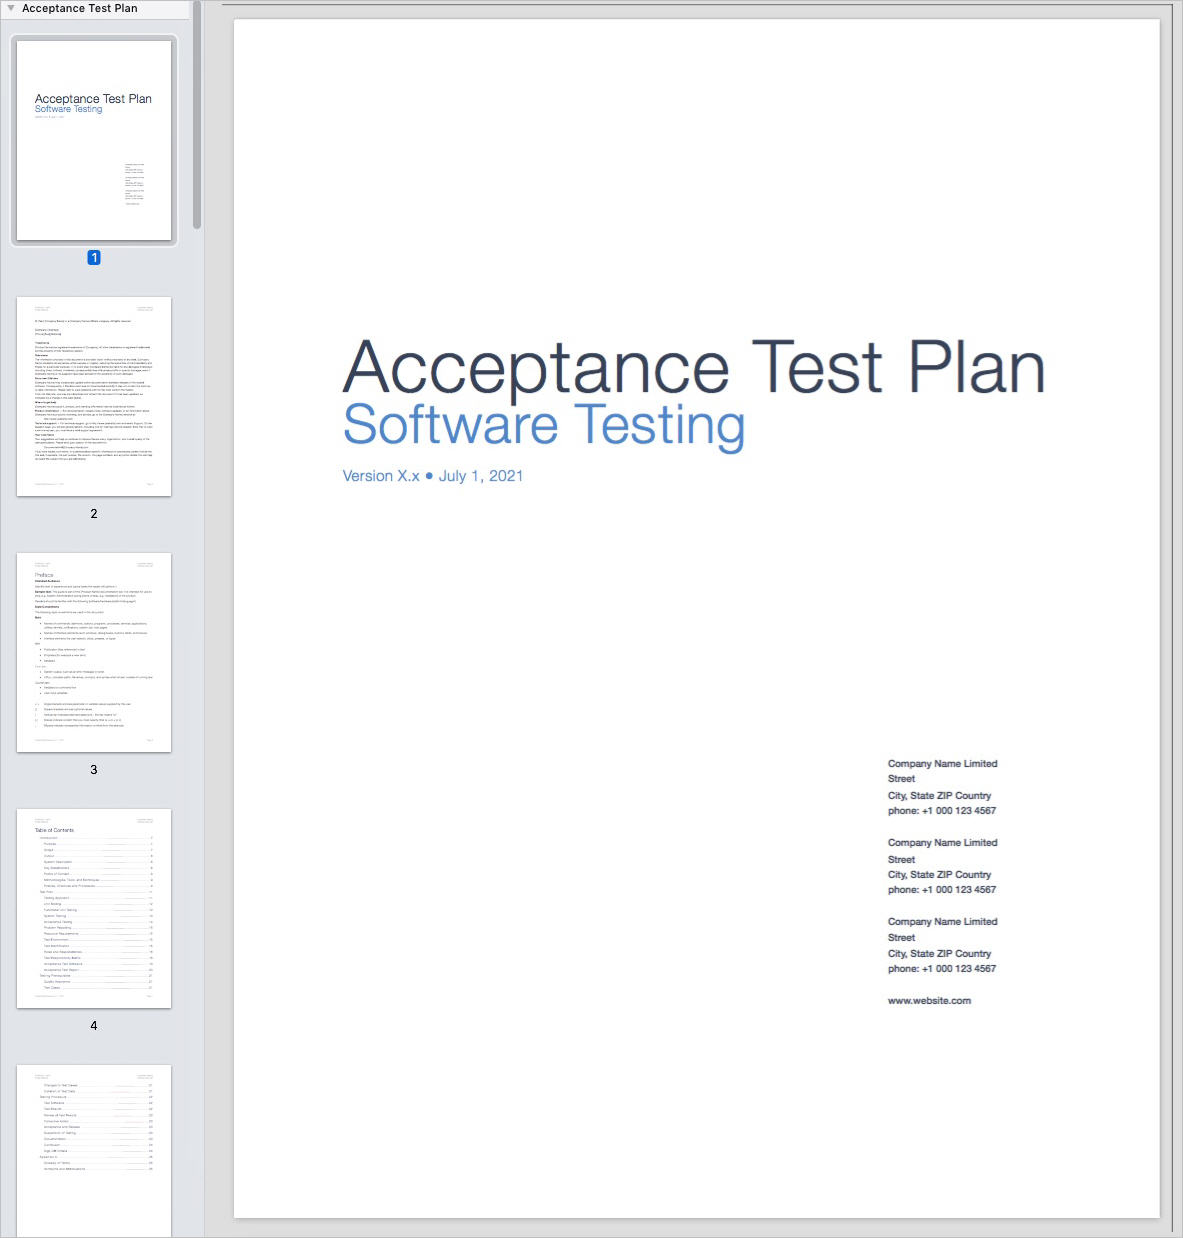 Acceptance_Test_Plan_Template_Thumbnails